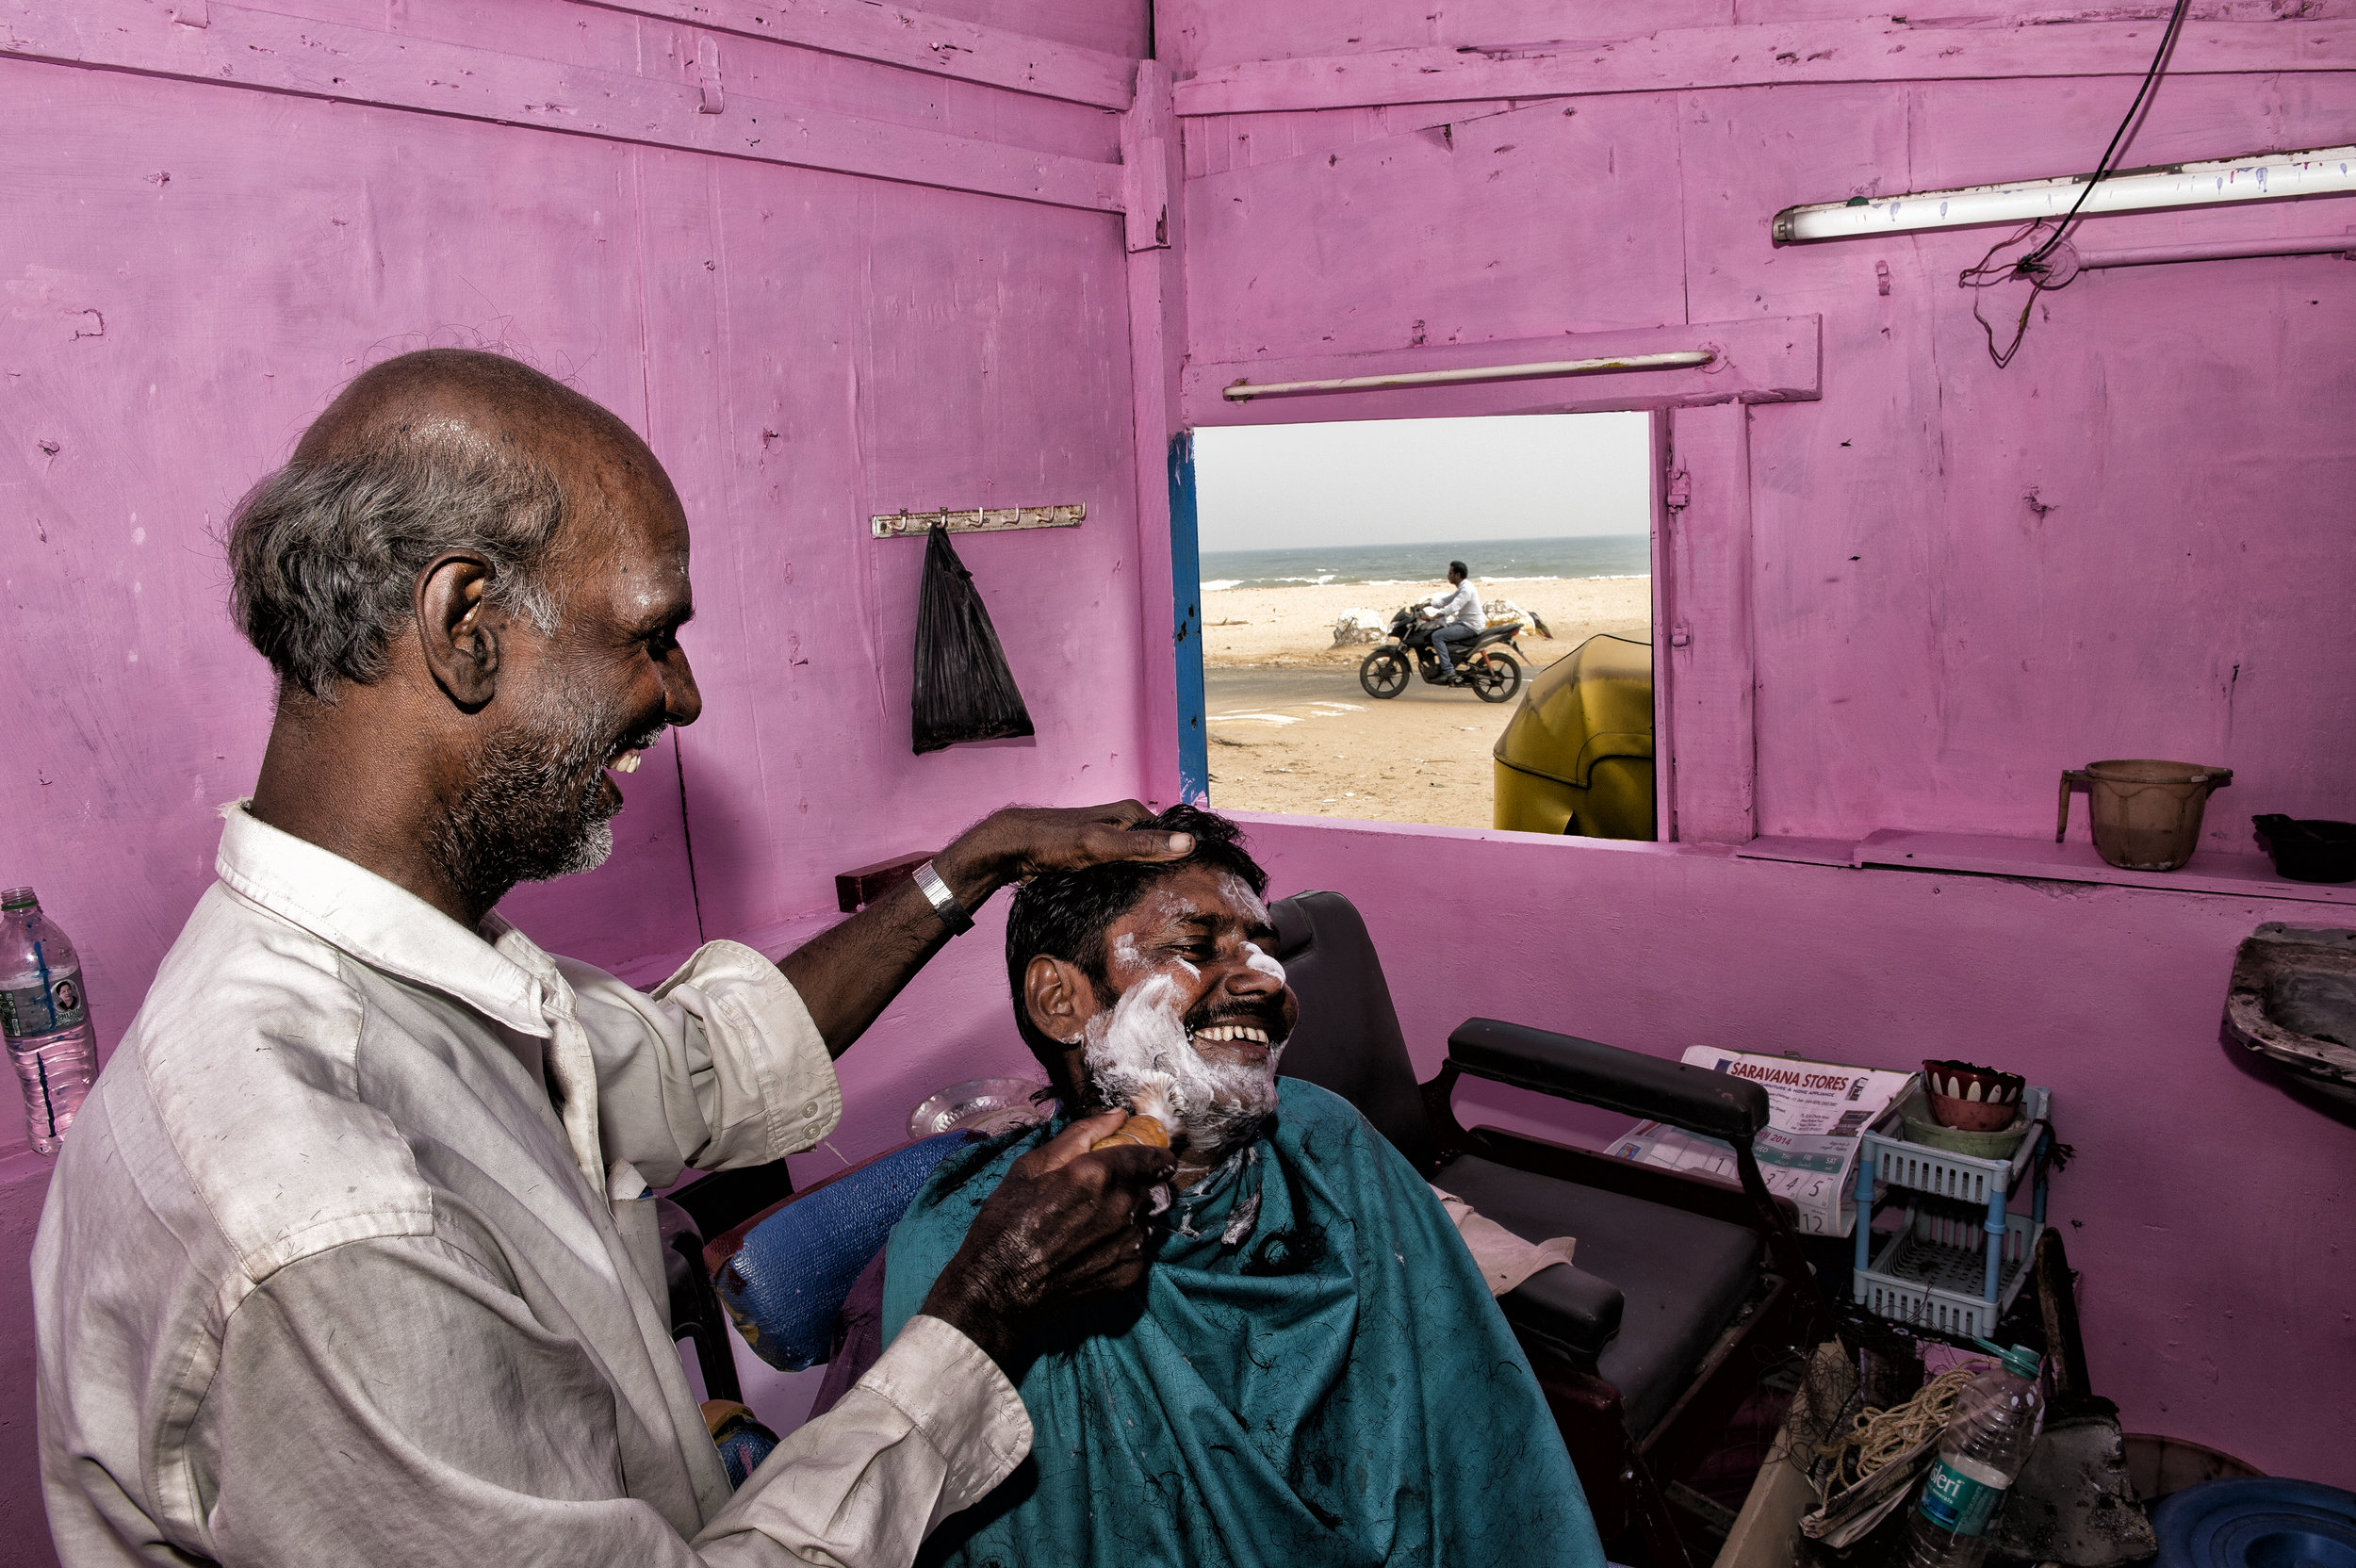 Hairdresser on the beach in India for National Geographic